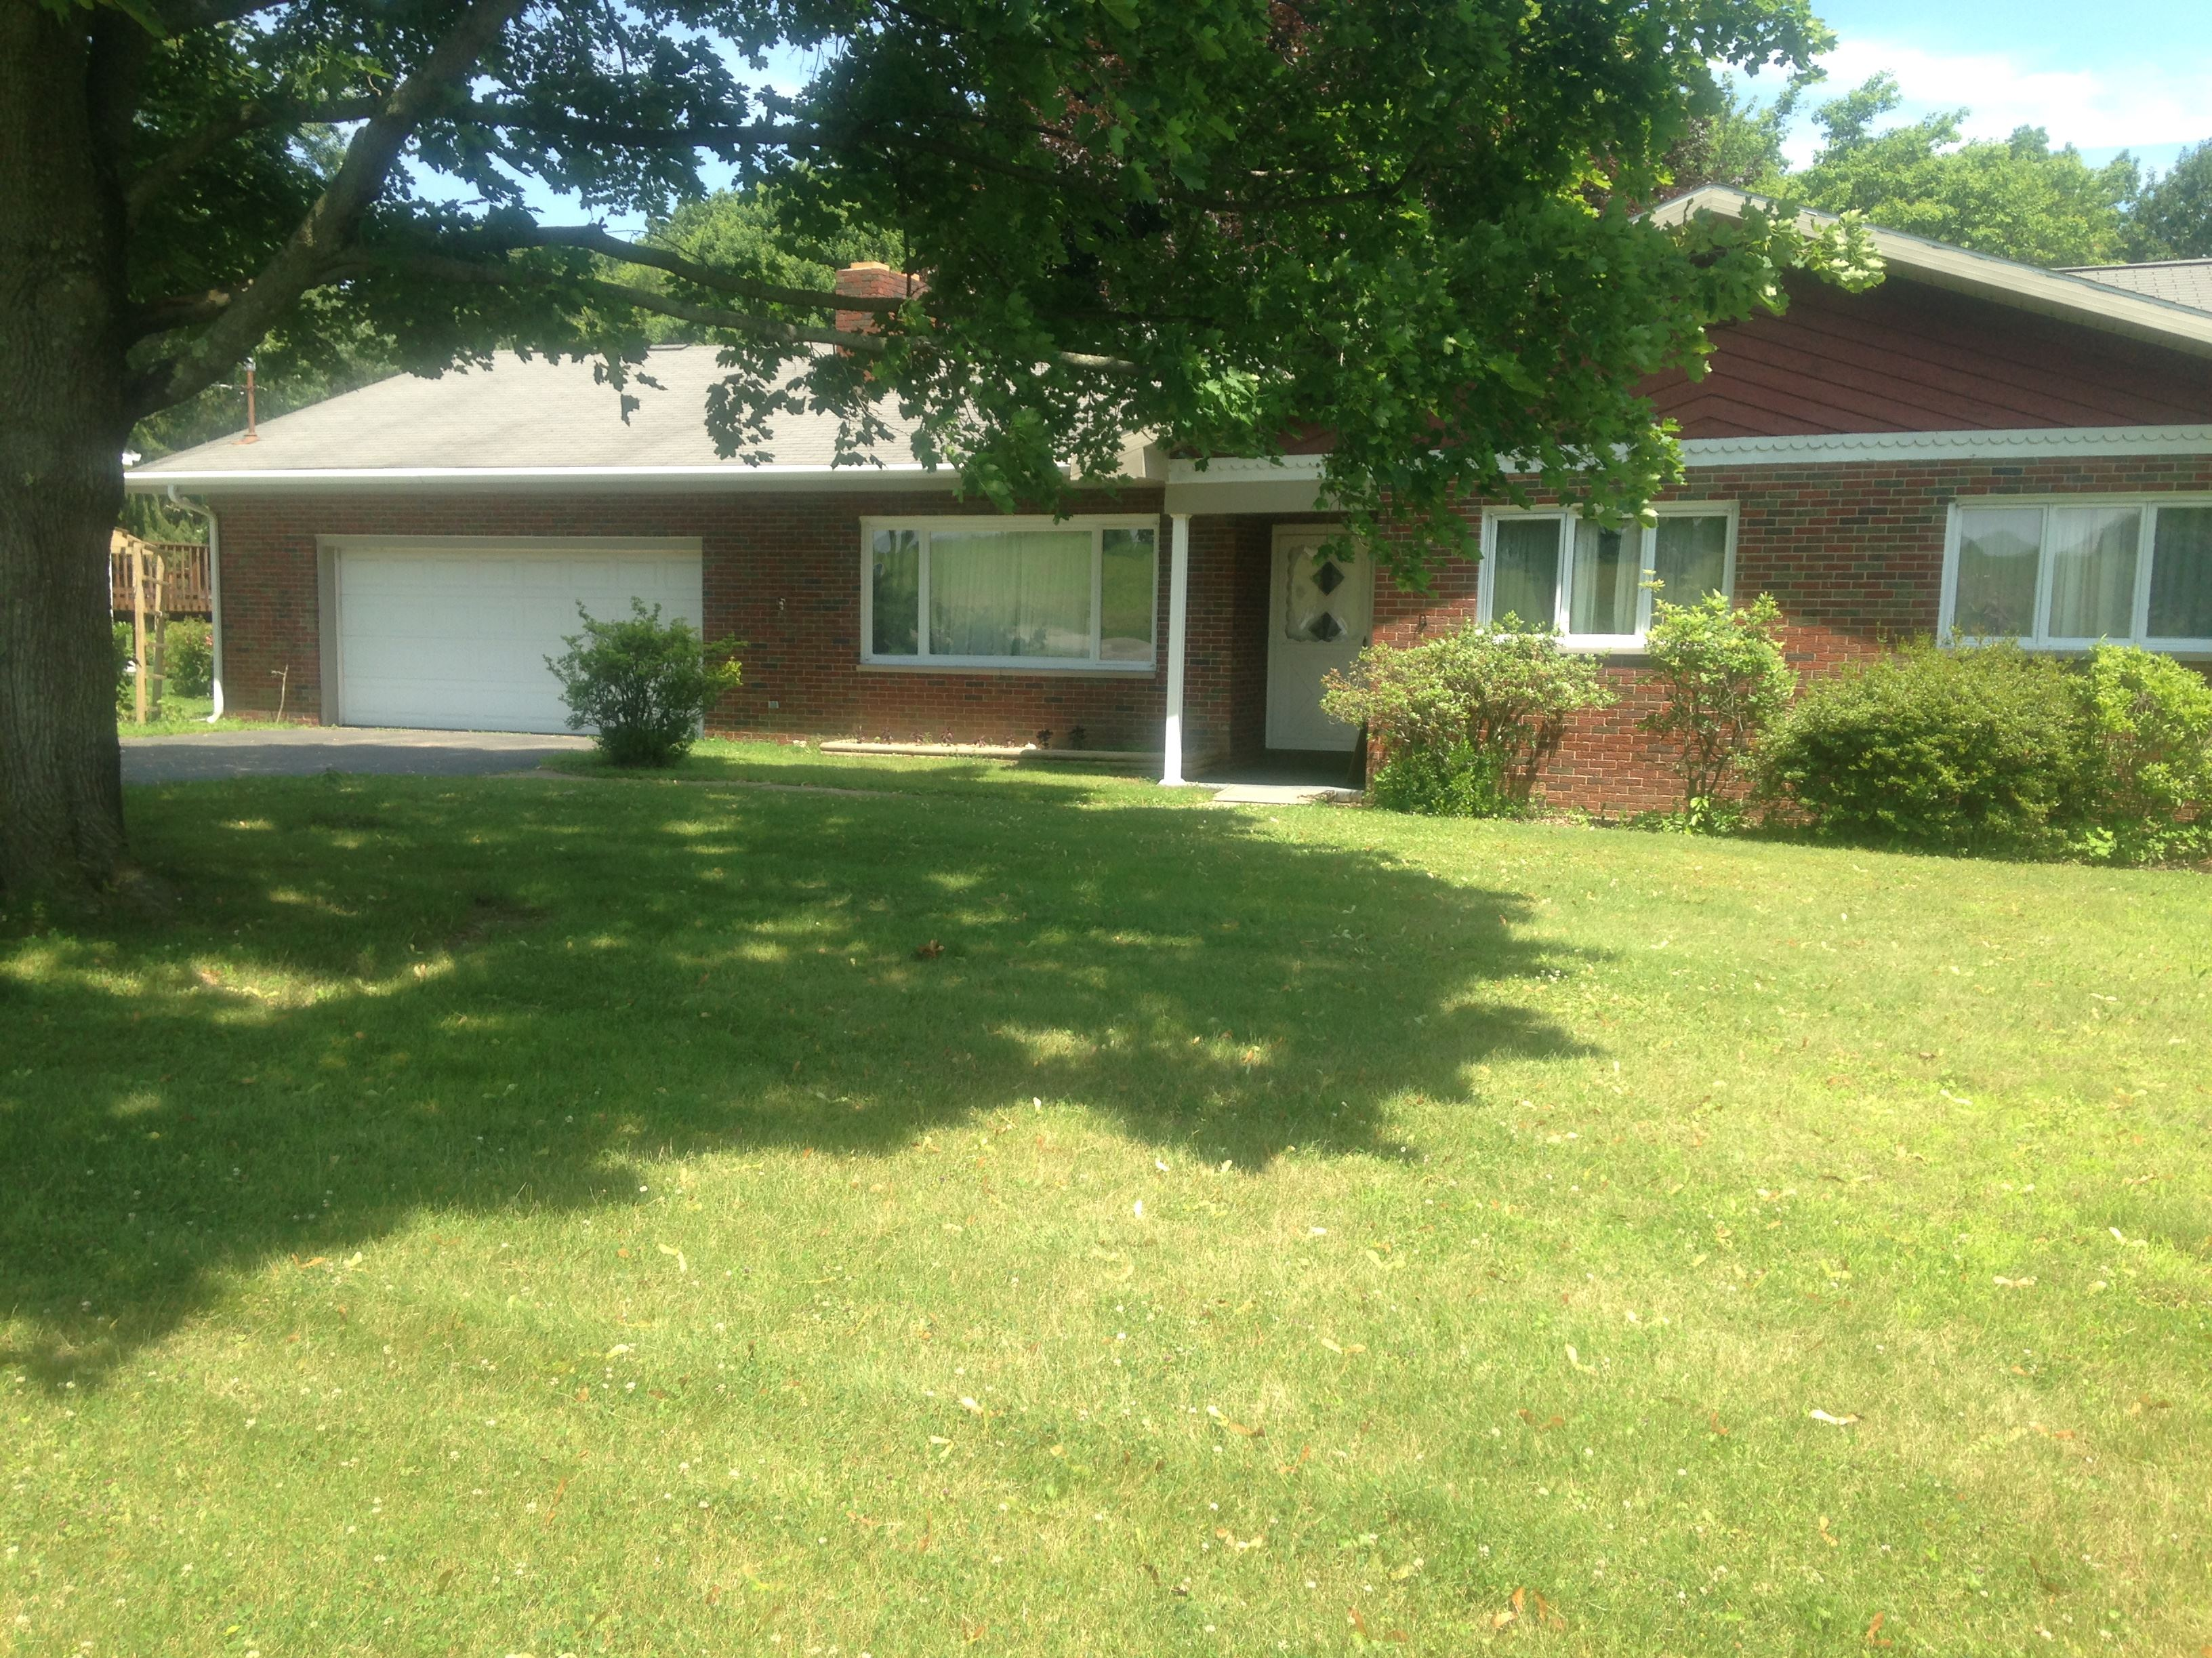 852 W. Old Route 422 - Contingent - New Listing!!852 West Old Route 422, Franklin TwpAttractive brick ranch on a beautiful...